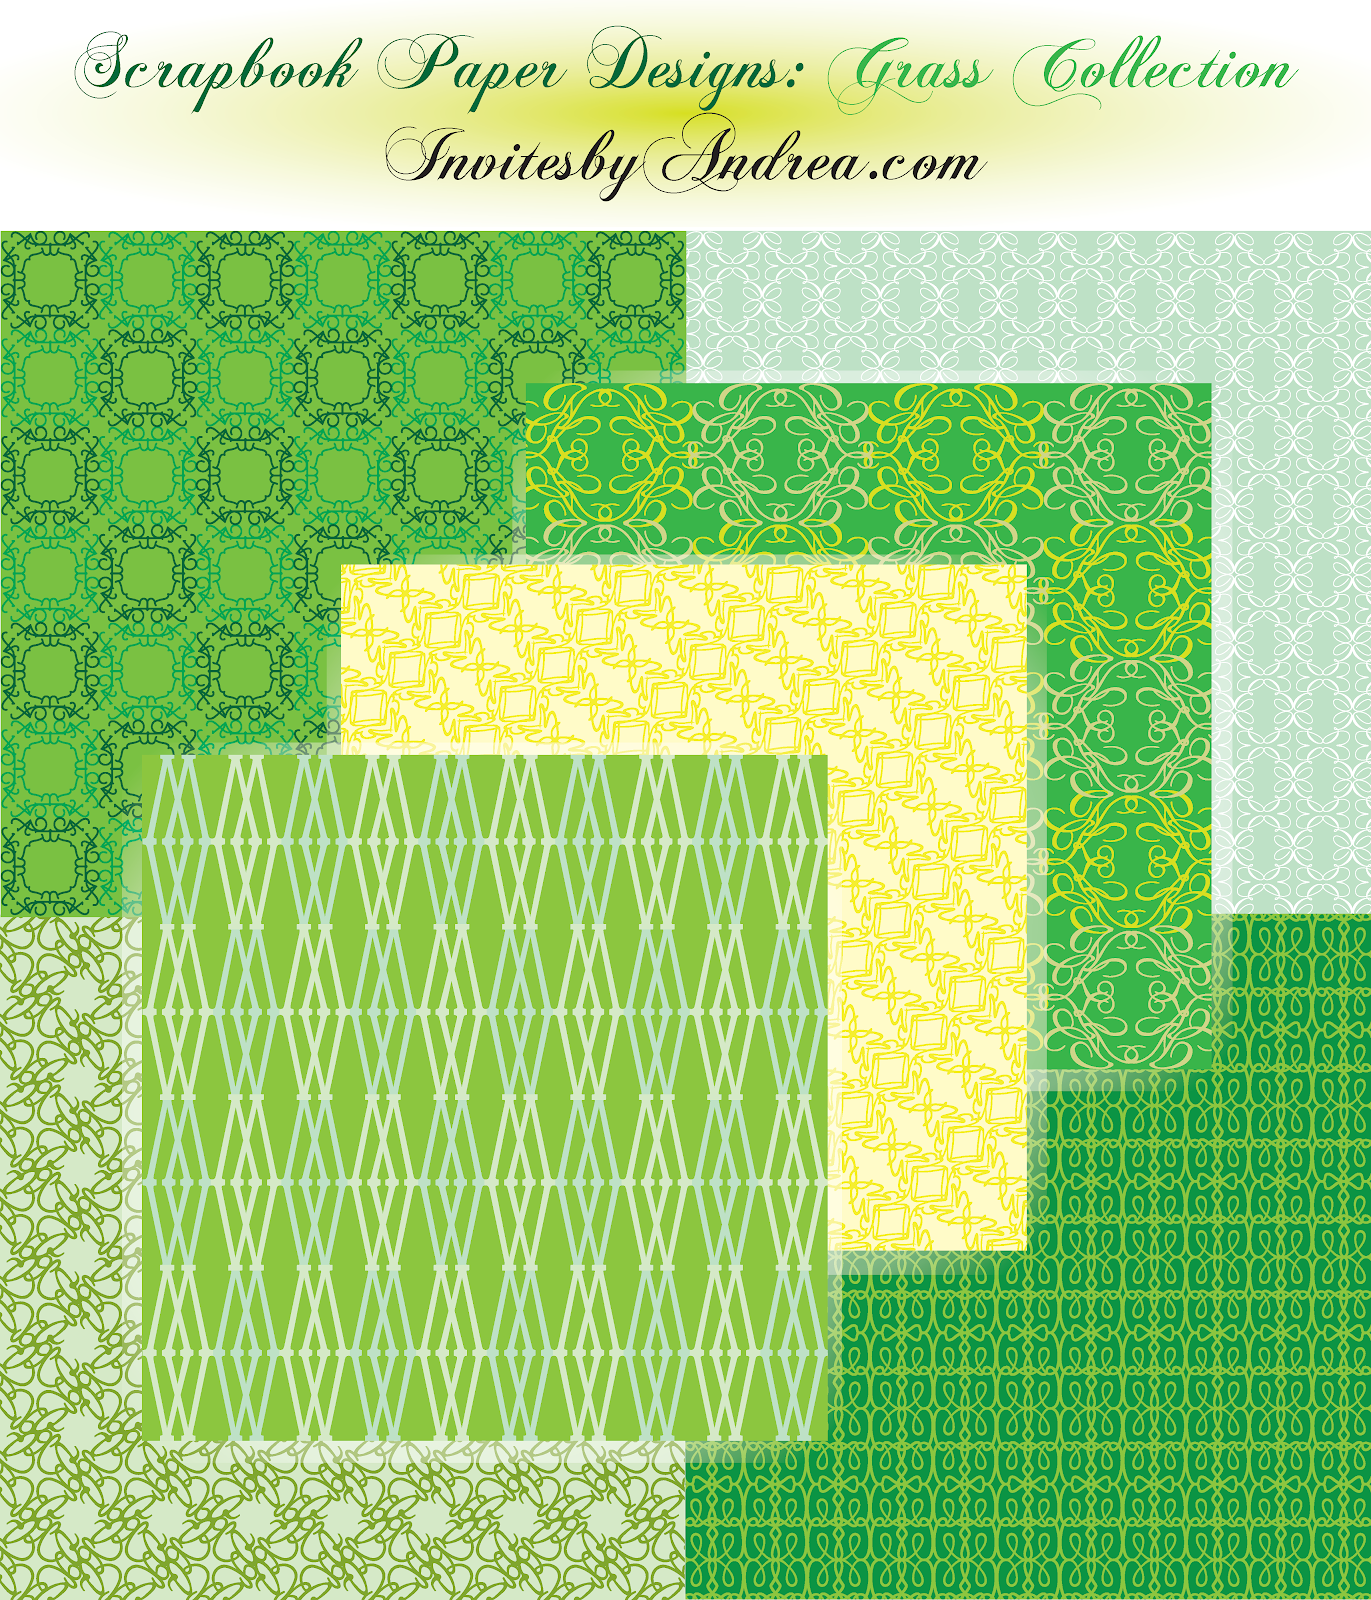 Scrapbook paper examples - If You See A Design You Like Or Want To See Some More Examples Of The Scrapbook Paper I Ve Been Creating Shoot Me An Email And I Can Send You Some